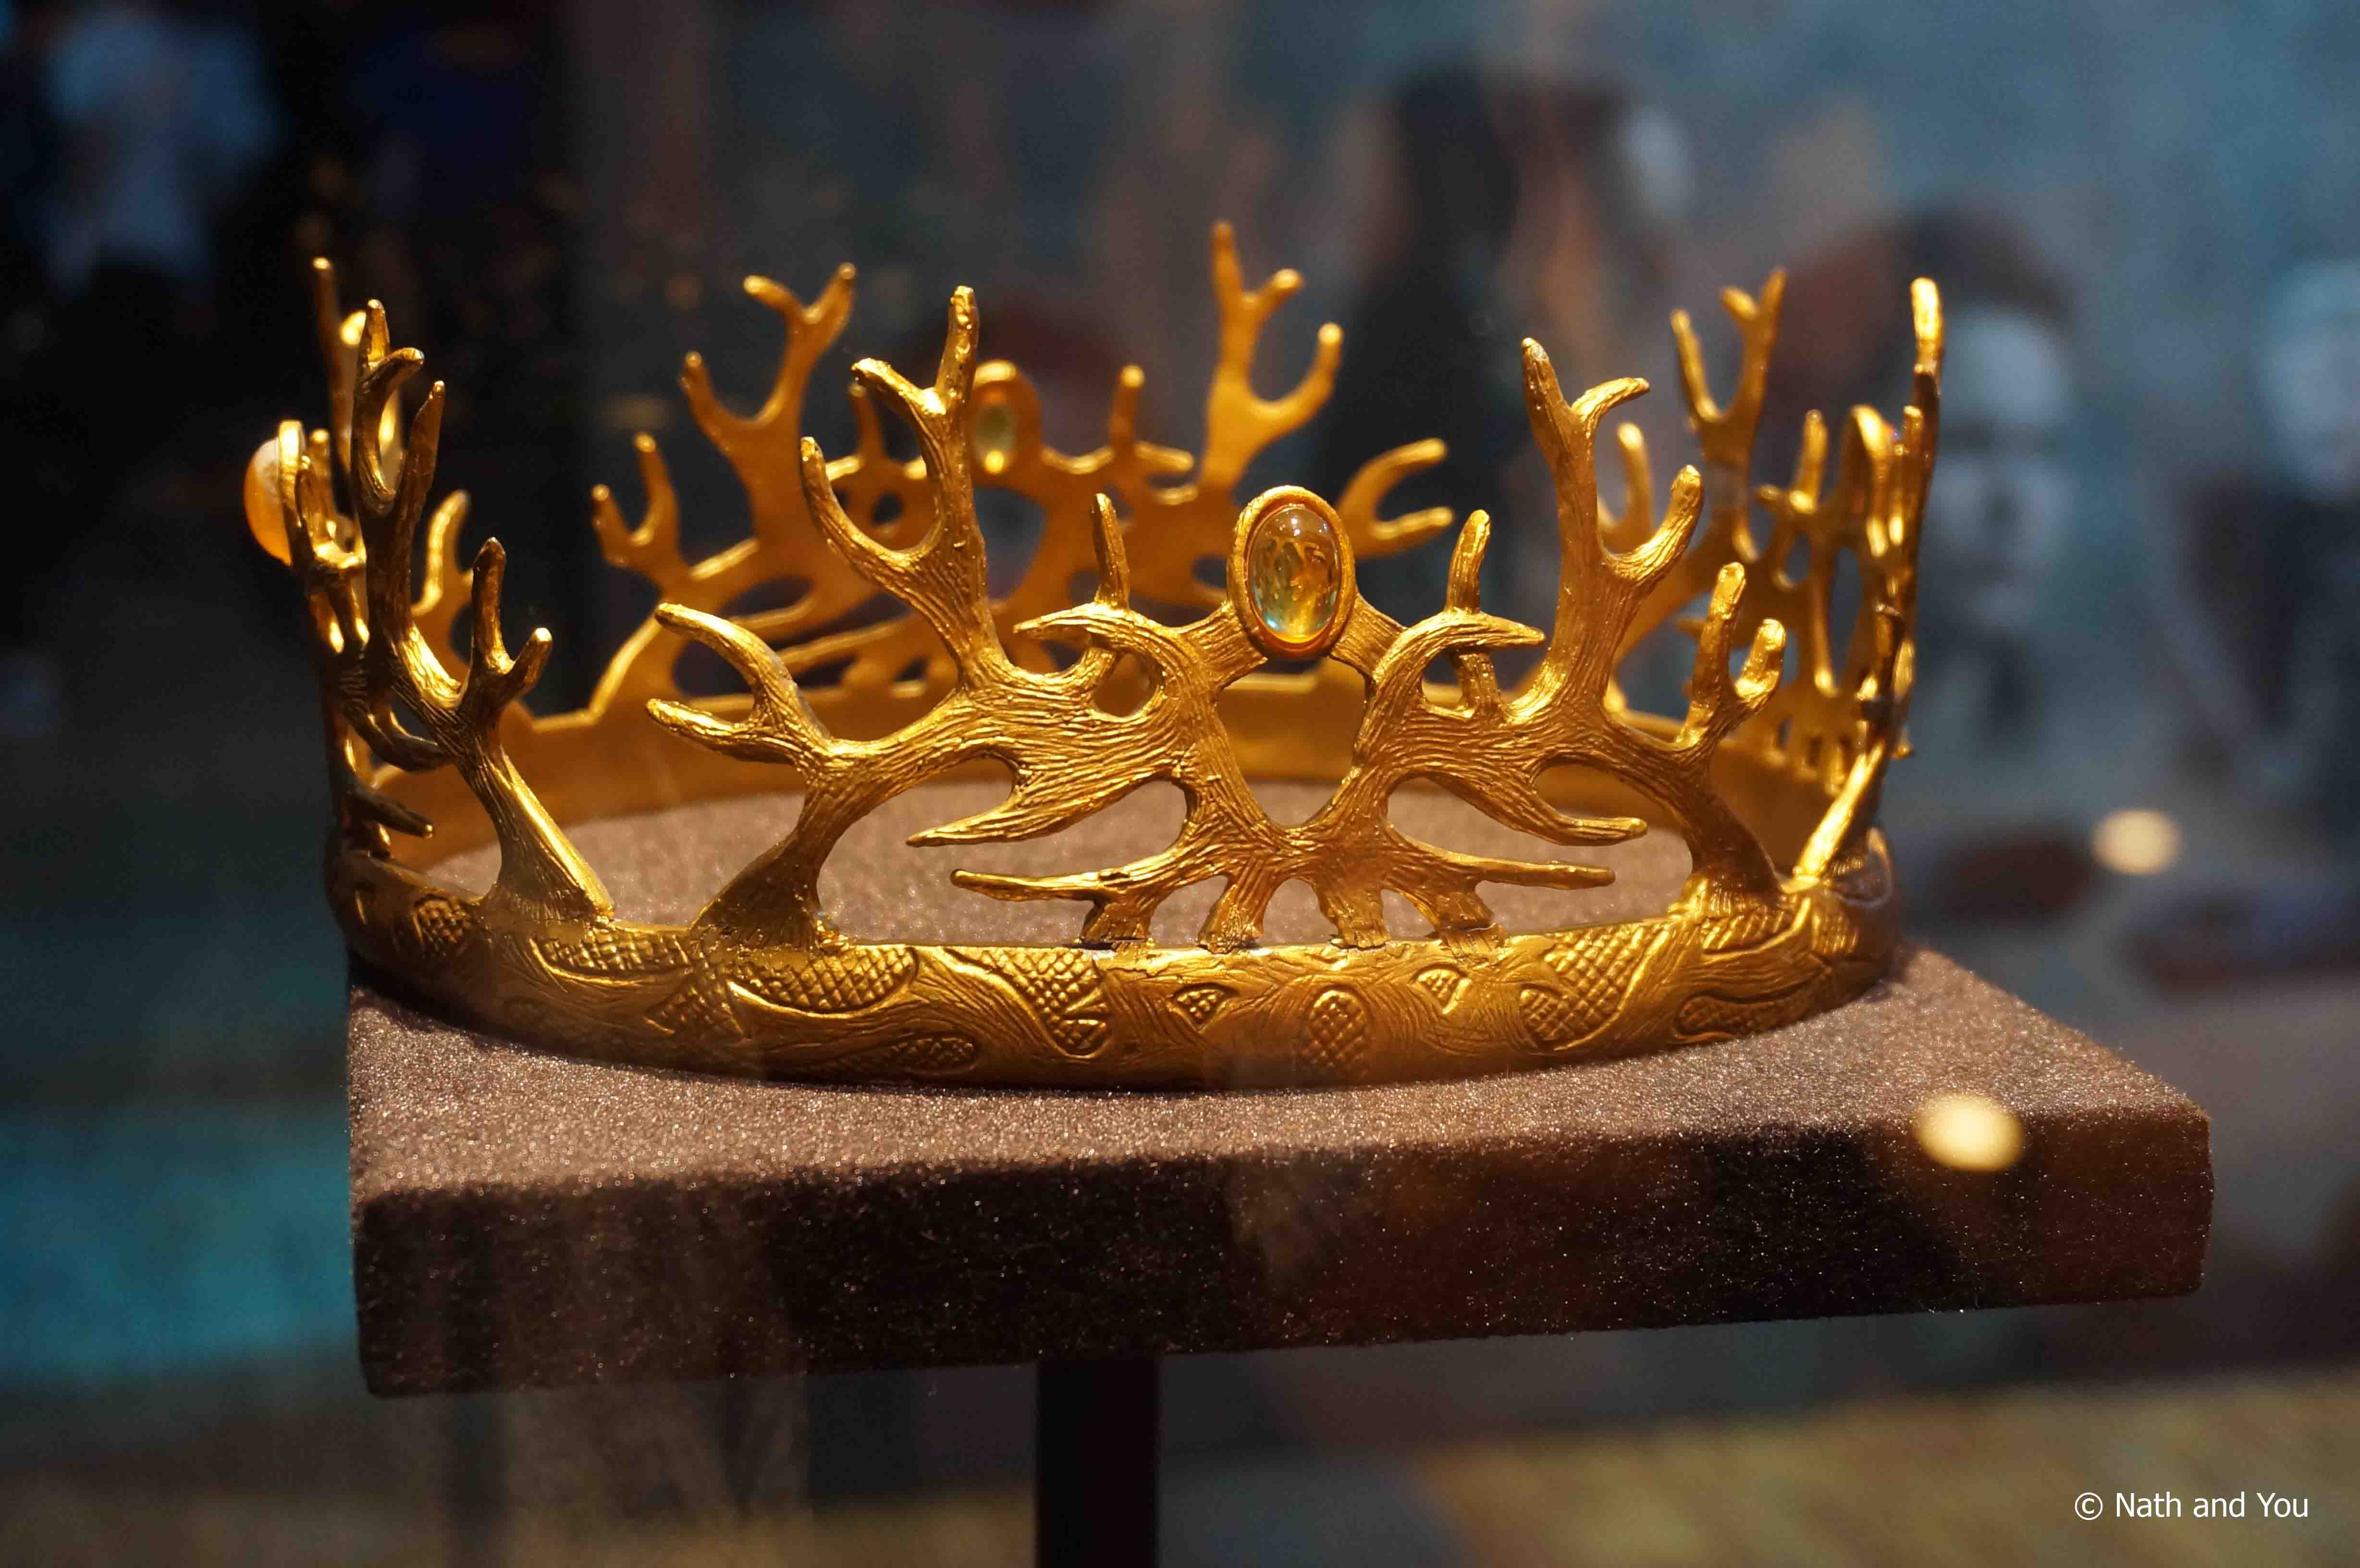 Couronne-Exposition-Game-of-Thrones-Nath-and-you